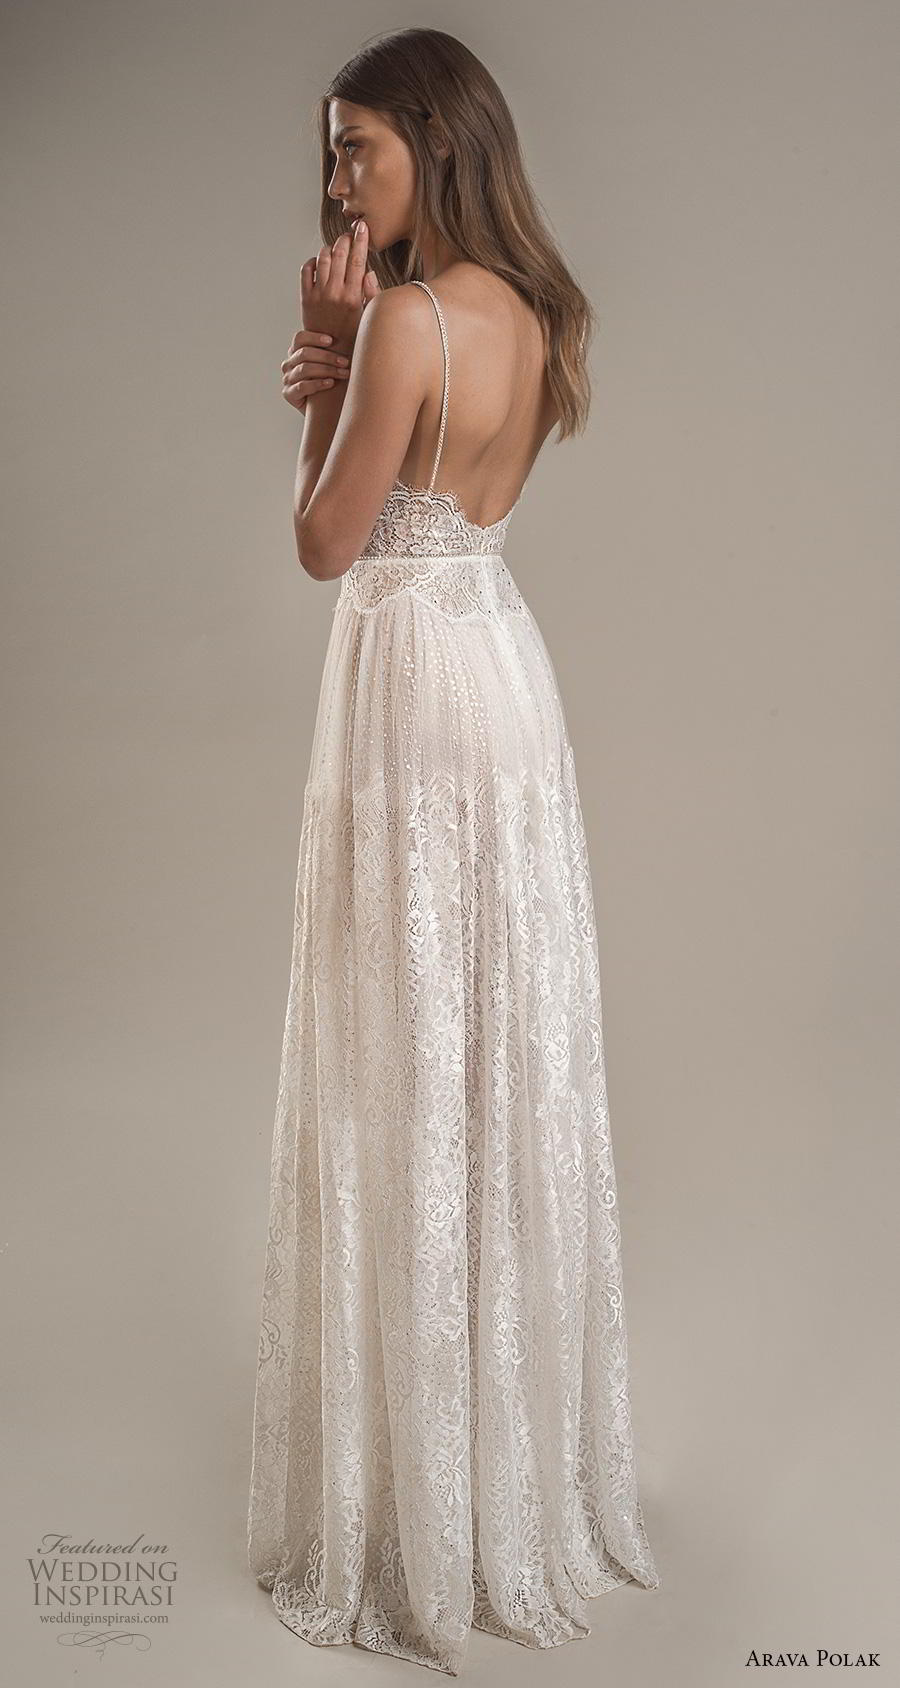 arava polak 2019 bridal sleeveless spaghetti strap deep sweetheart neckline full embellishment romantic bohemian soft a line wedding dress backless low scoop back sweep train (6) bv